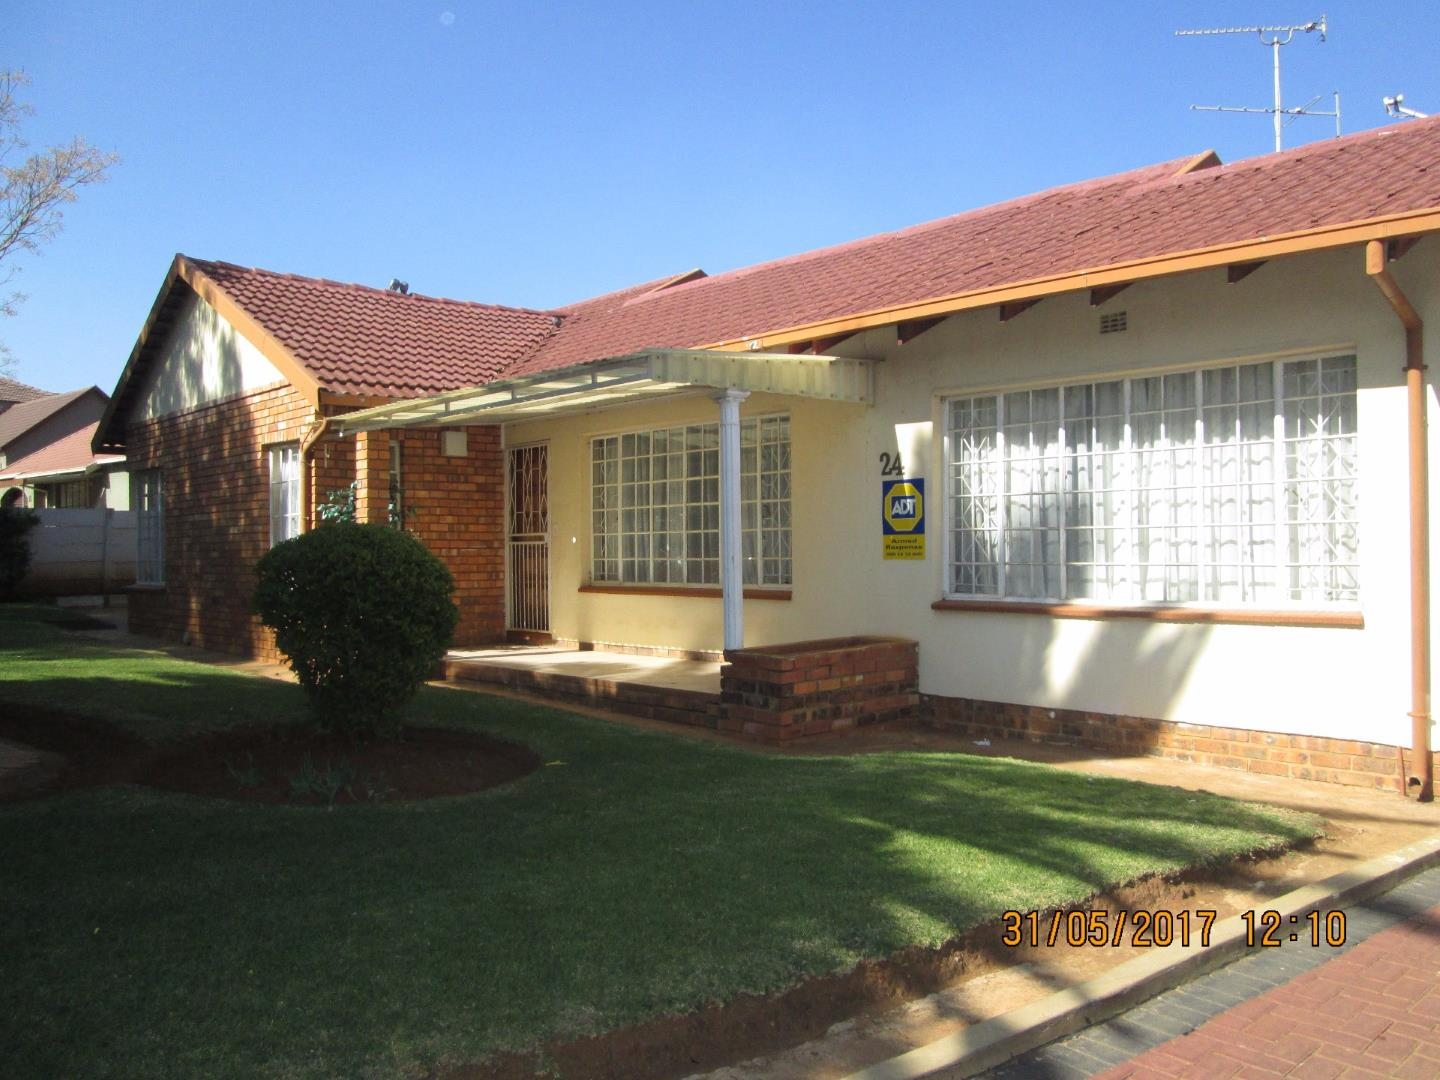 Johannesburg, Meredale Property  | Houses For Sale Meredale, Meredale, House 3 bedrooms property for sale Price:1,470,000